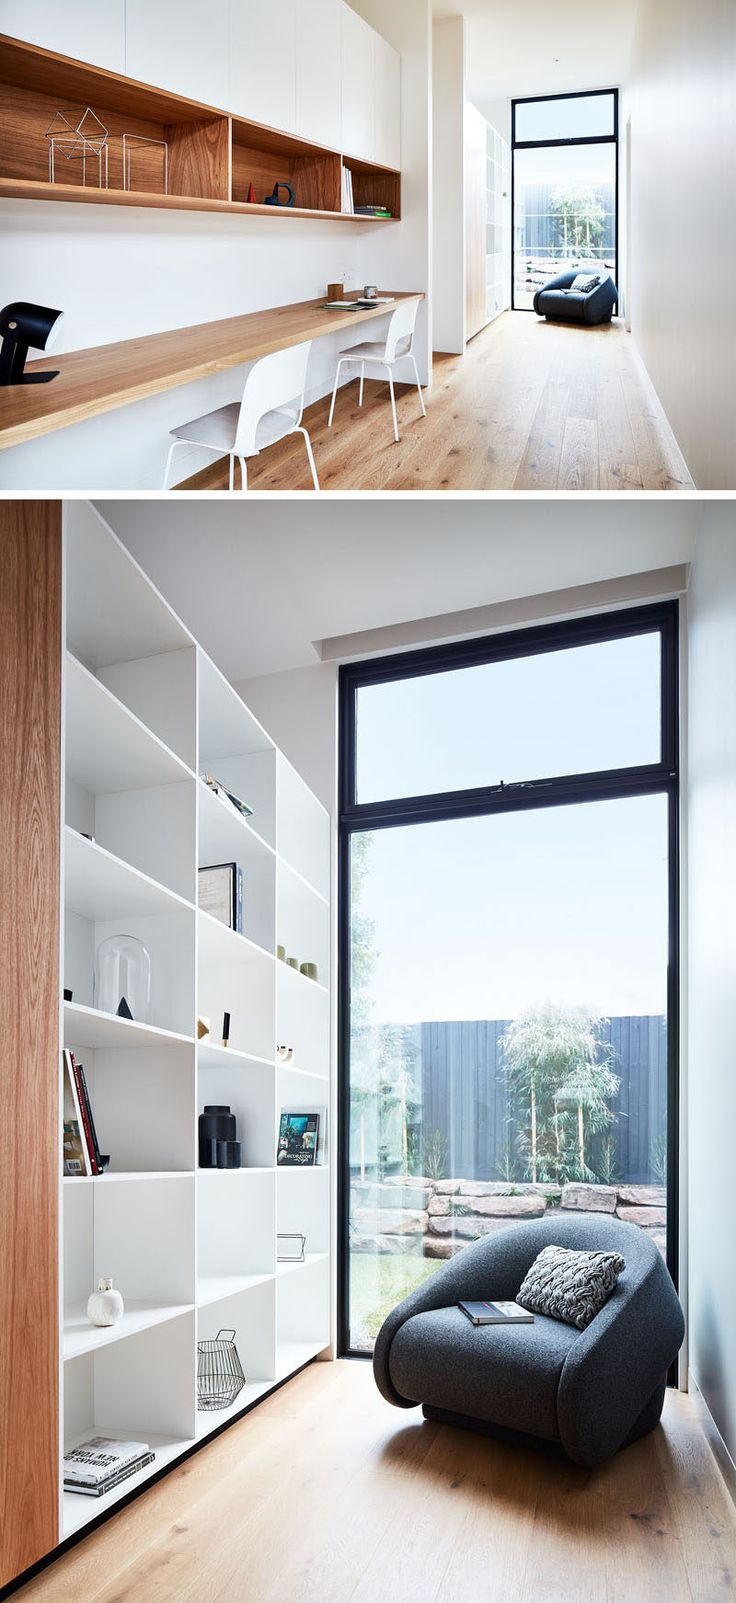 In this modern house, a home office (or homework station) has been tucked into a hallway. It has a long wood desk and open wood shelving, and next to the window is a small library area with a bookcase. #HomeOffice #HomeworkStation #HomeLibrary